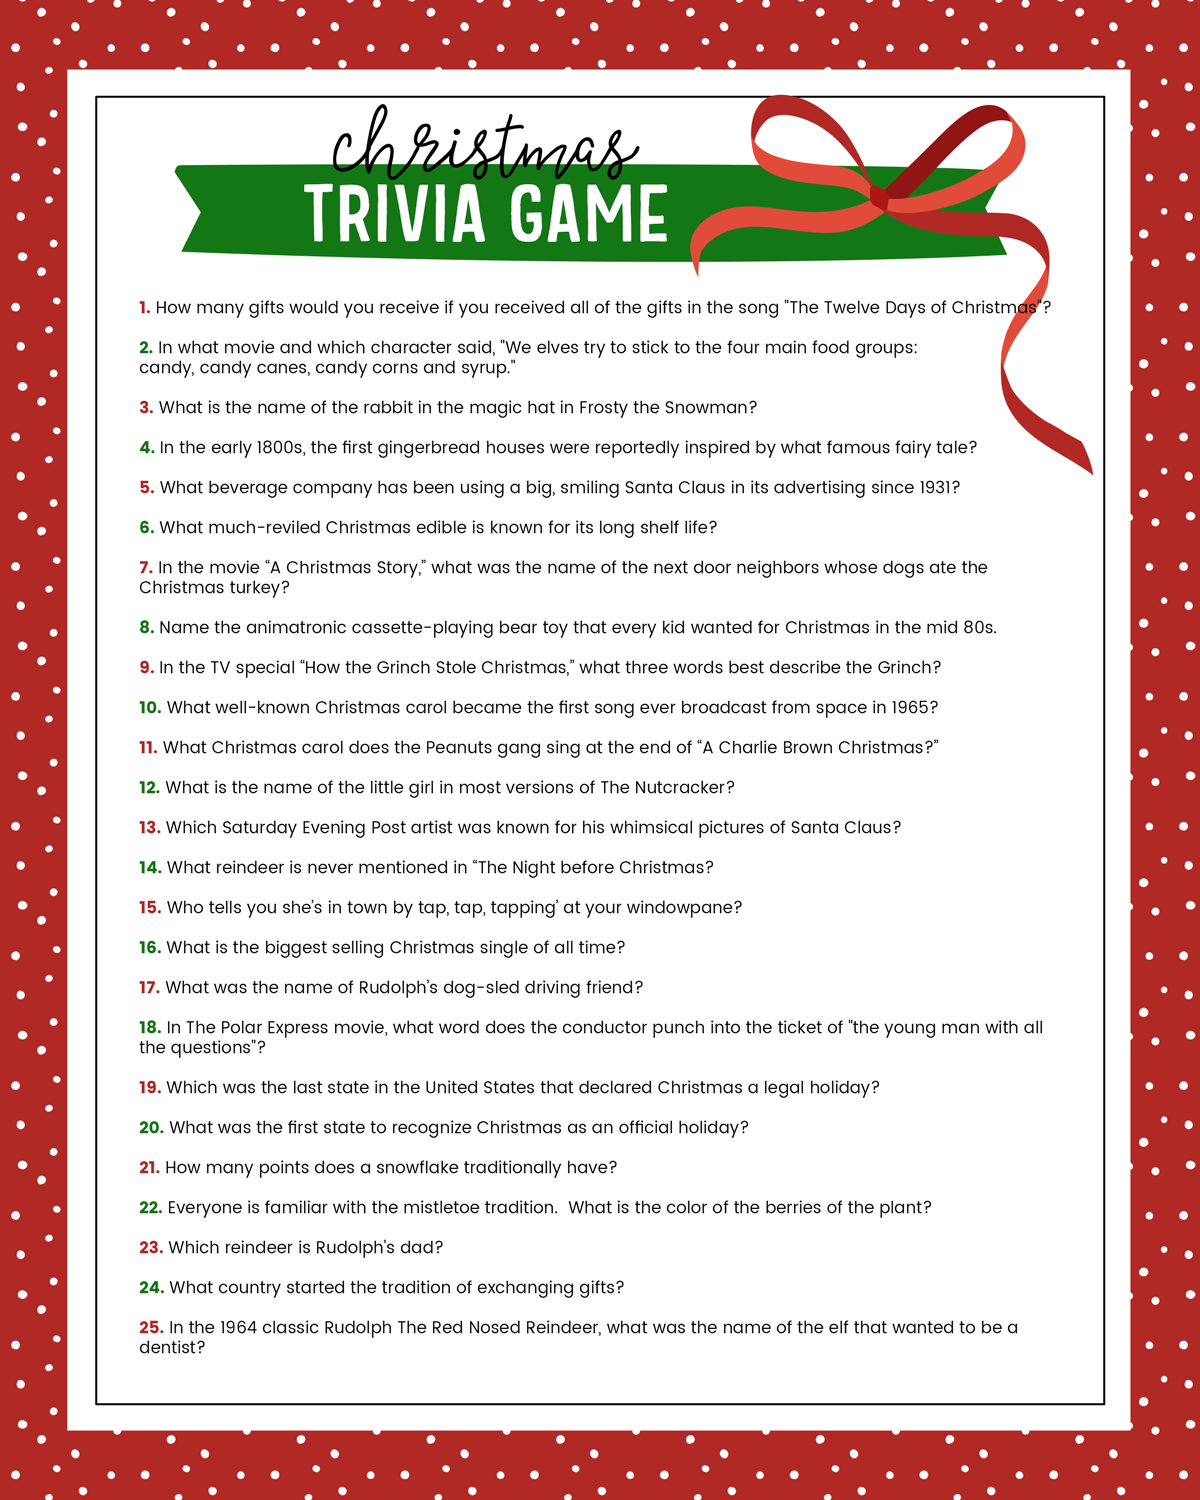 Free Christmas Trivia Game | Lil' Luna - Free Printable Trivia Questions And Answers